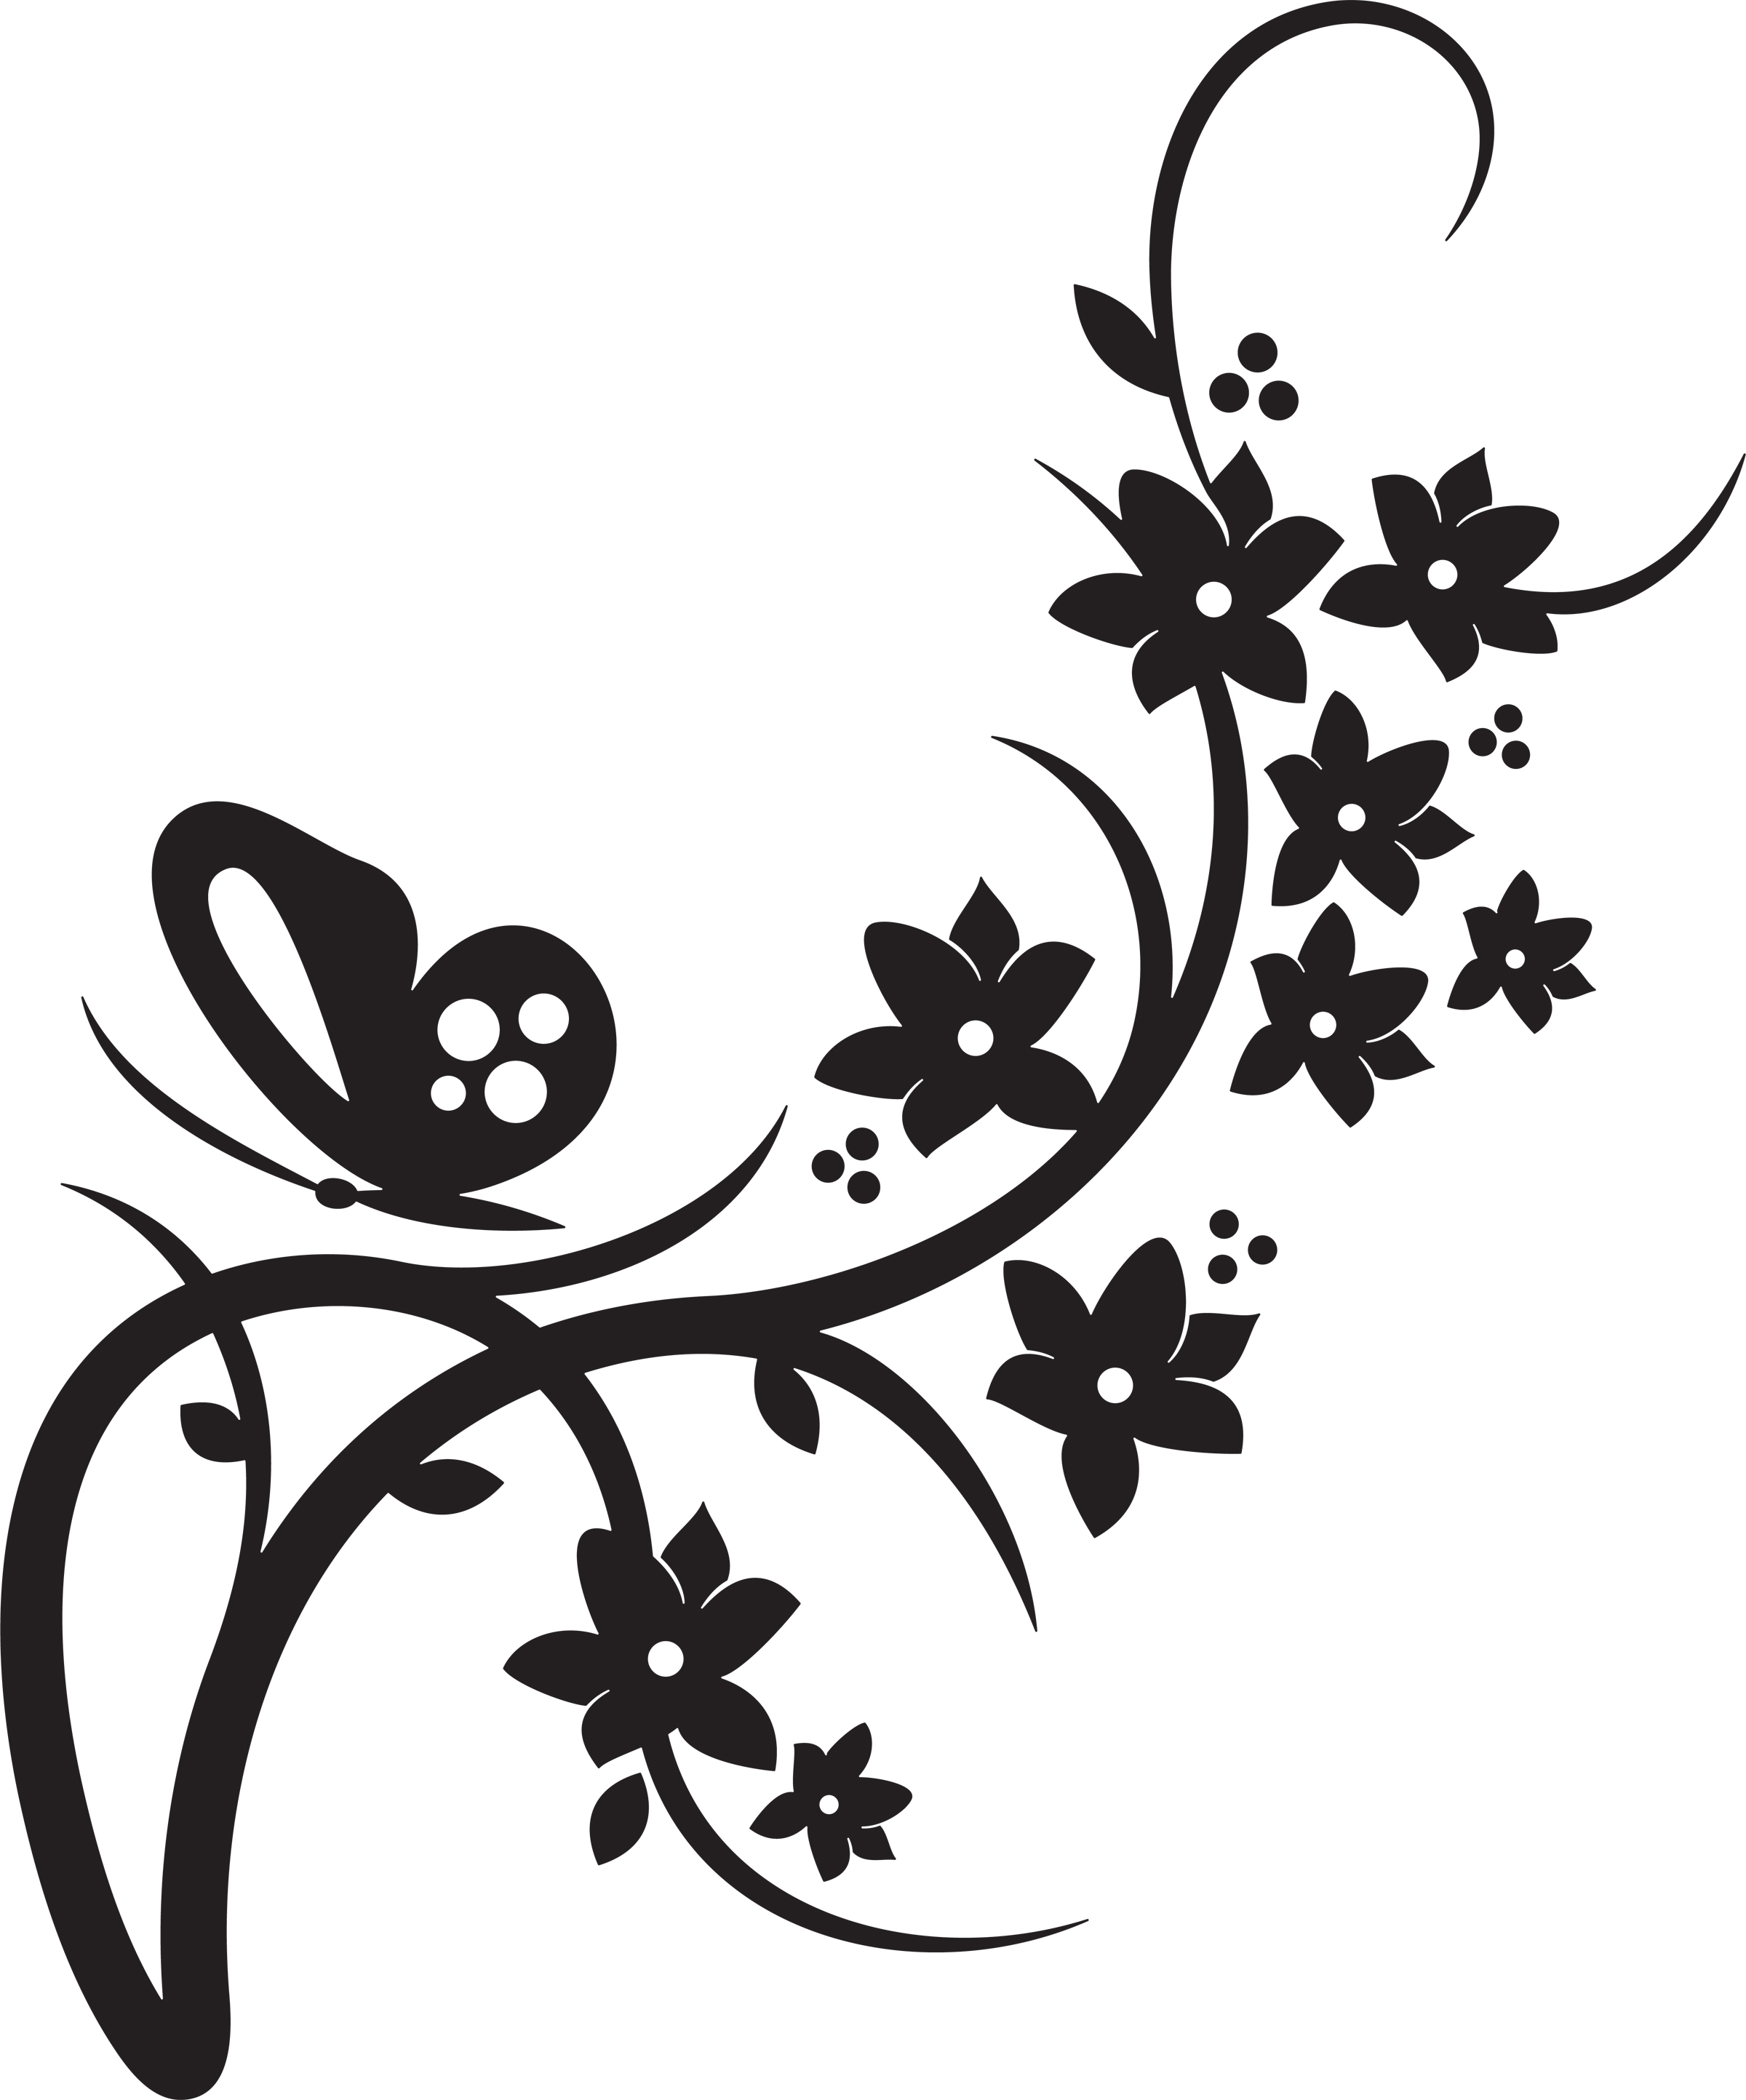 Flower Bouquet Clipart Black And White